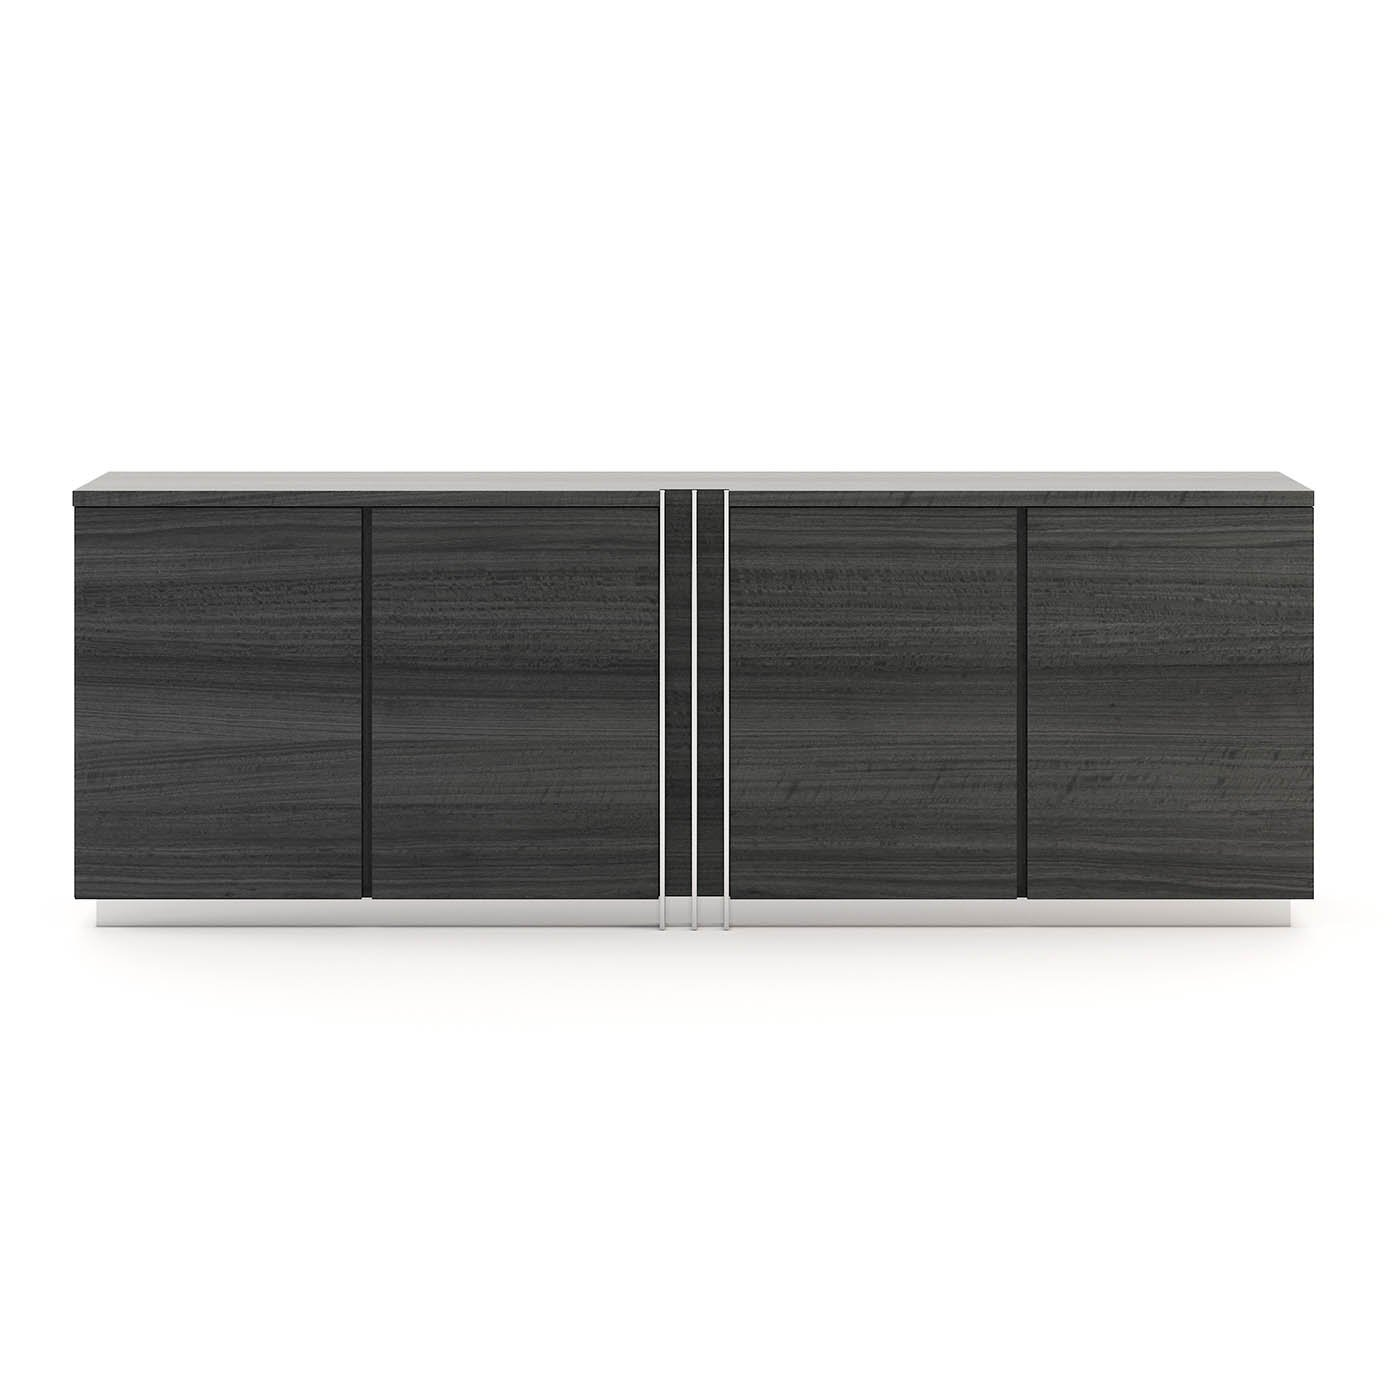 D'Arc Sideboard